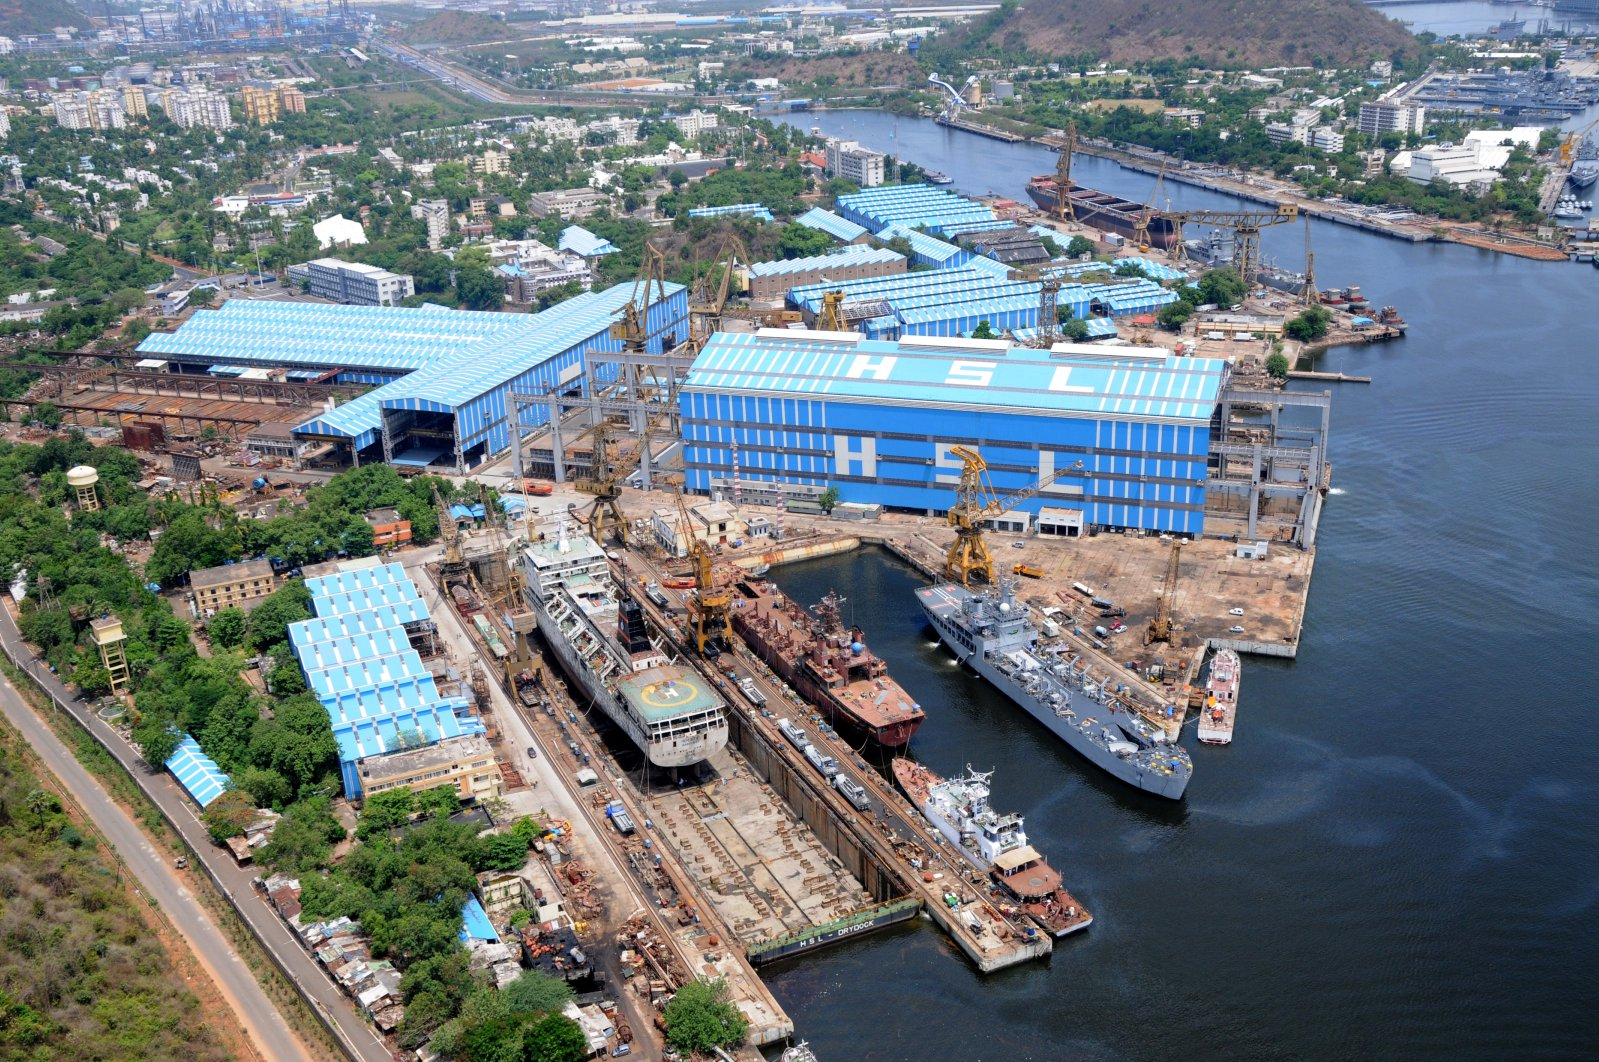 An aerial view of the Hindustan Shipyard Limited. (Wikipedia Image)